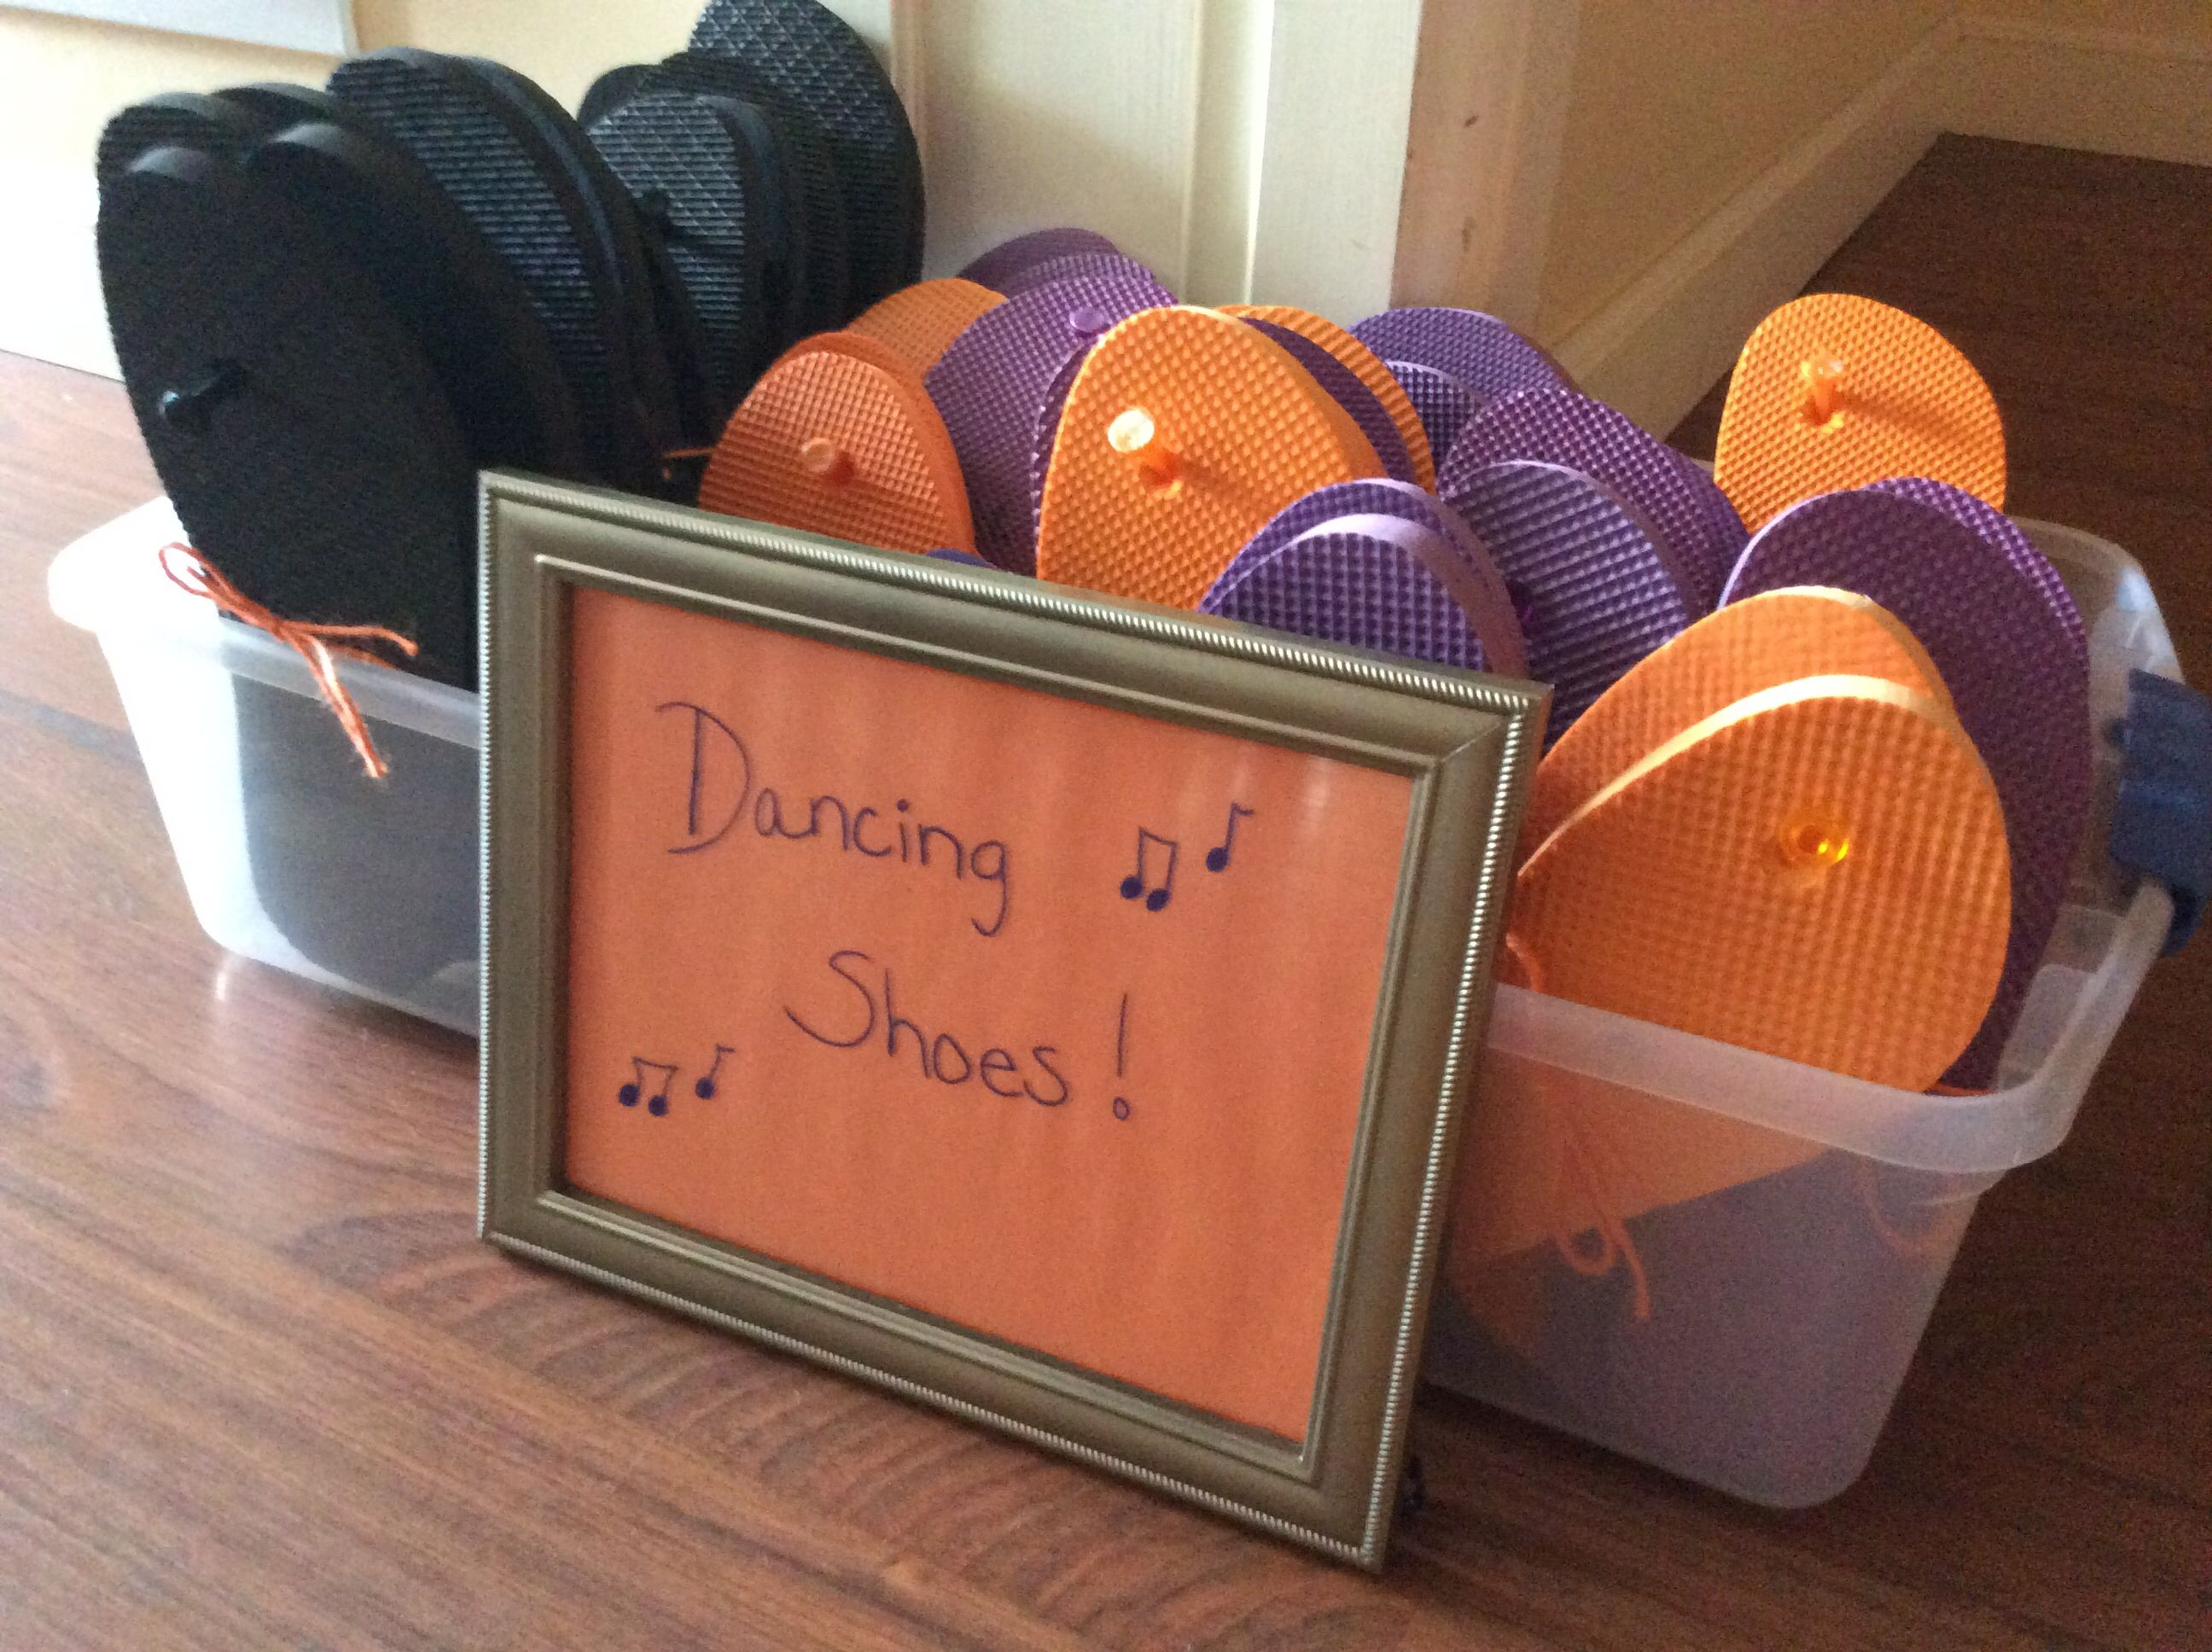 A neat idea for when the dance floor opens